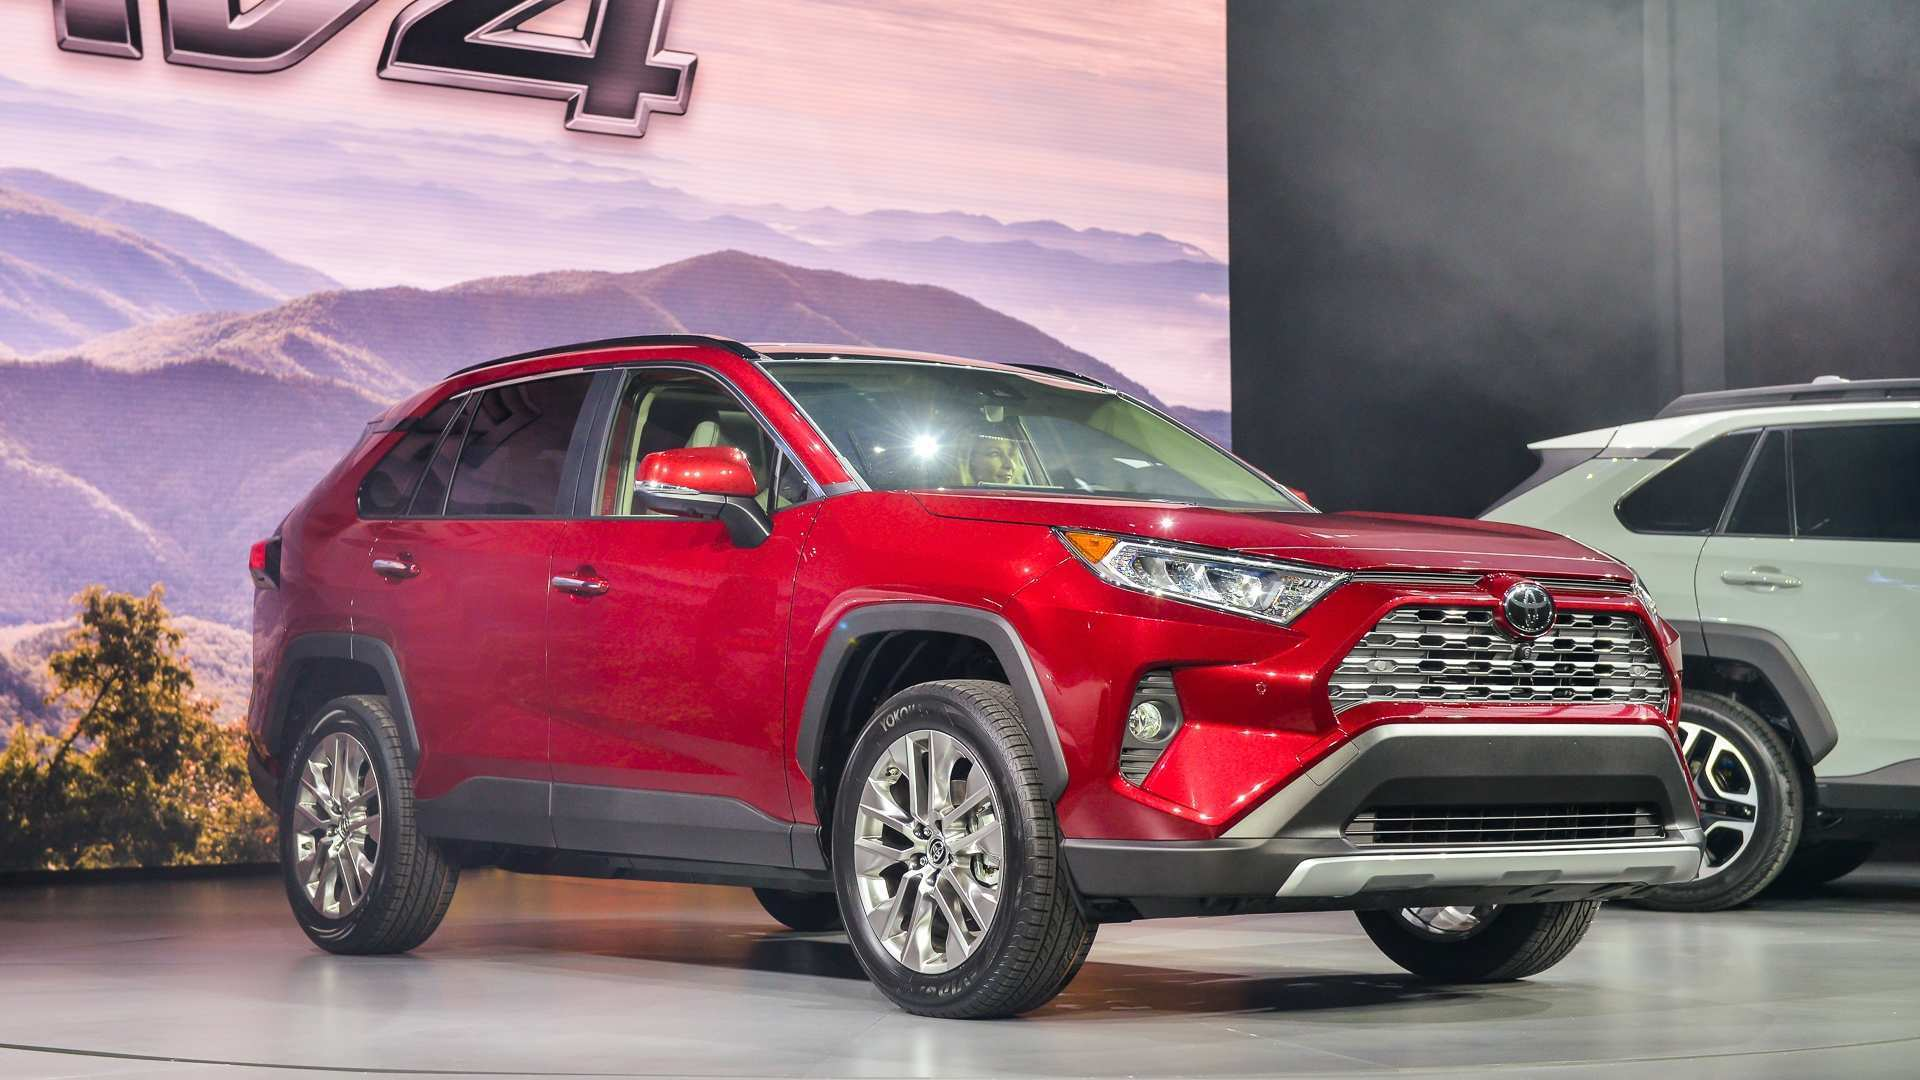 82 All New 2019 Toyota Rav4 Hybrid Specs Specs And Review